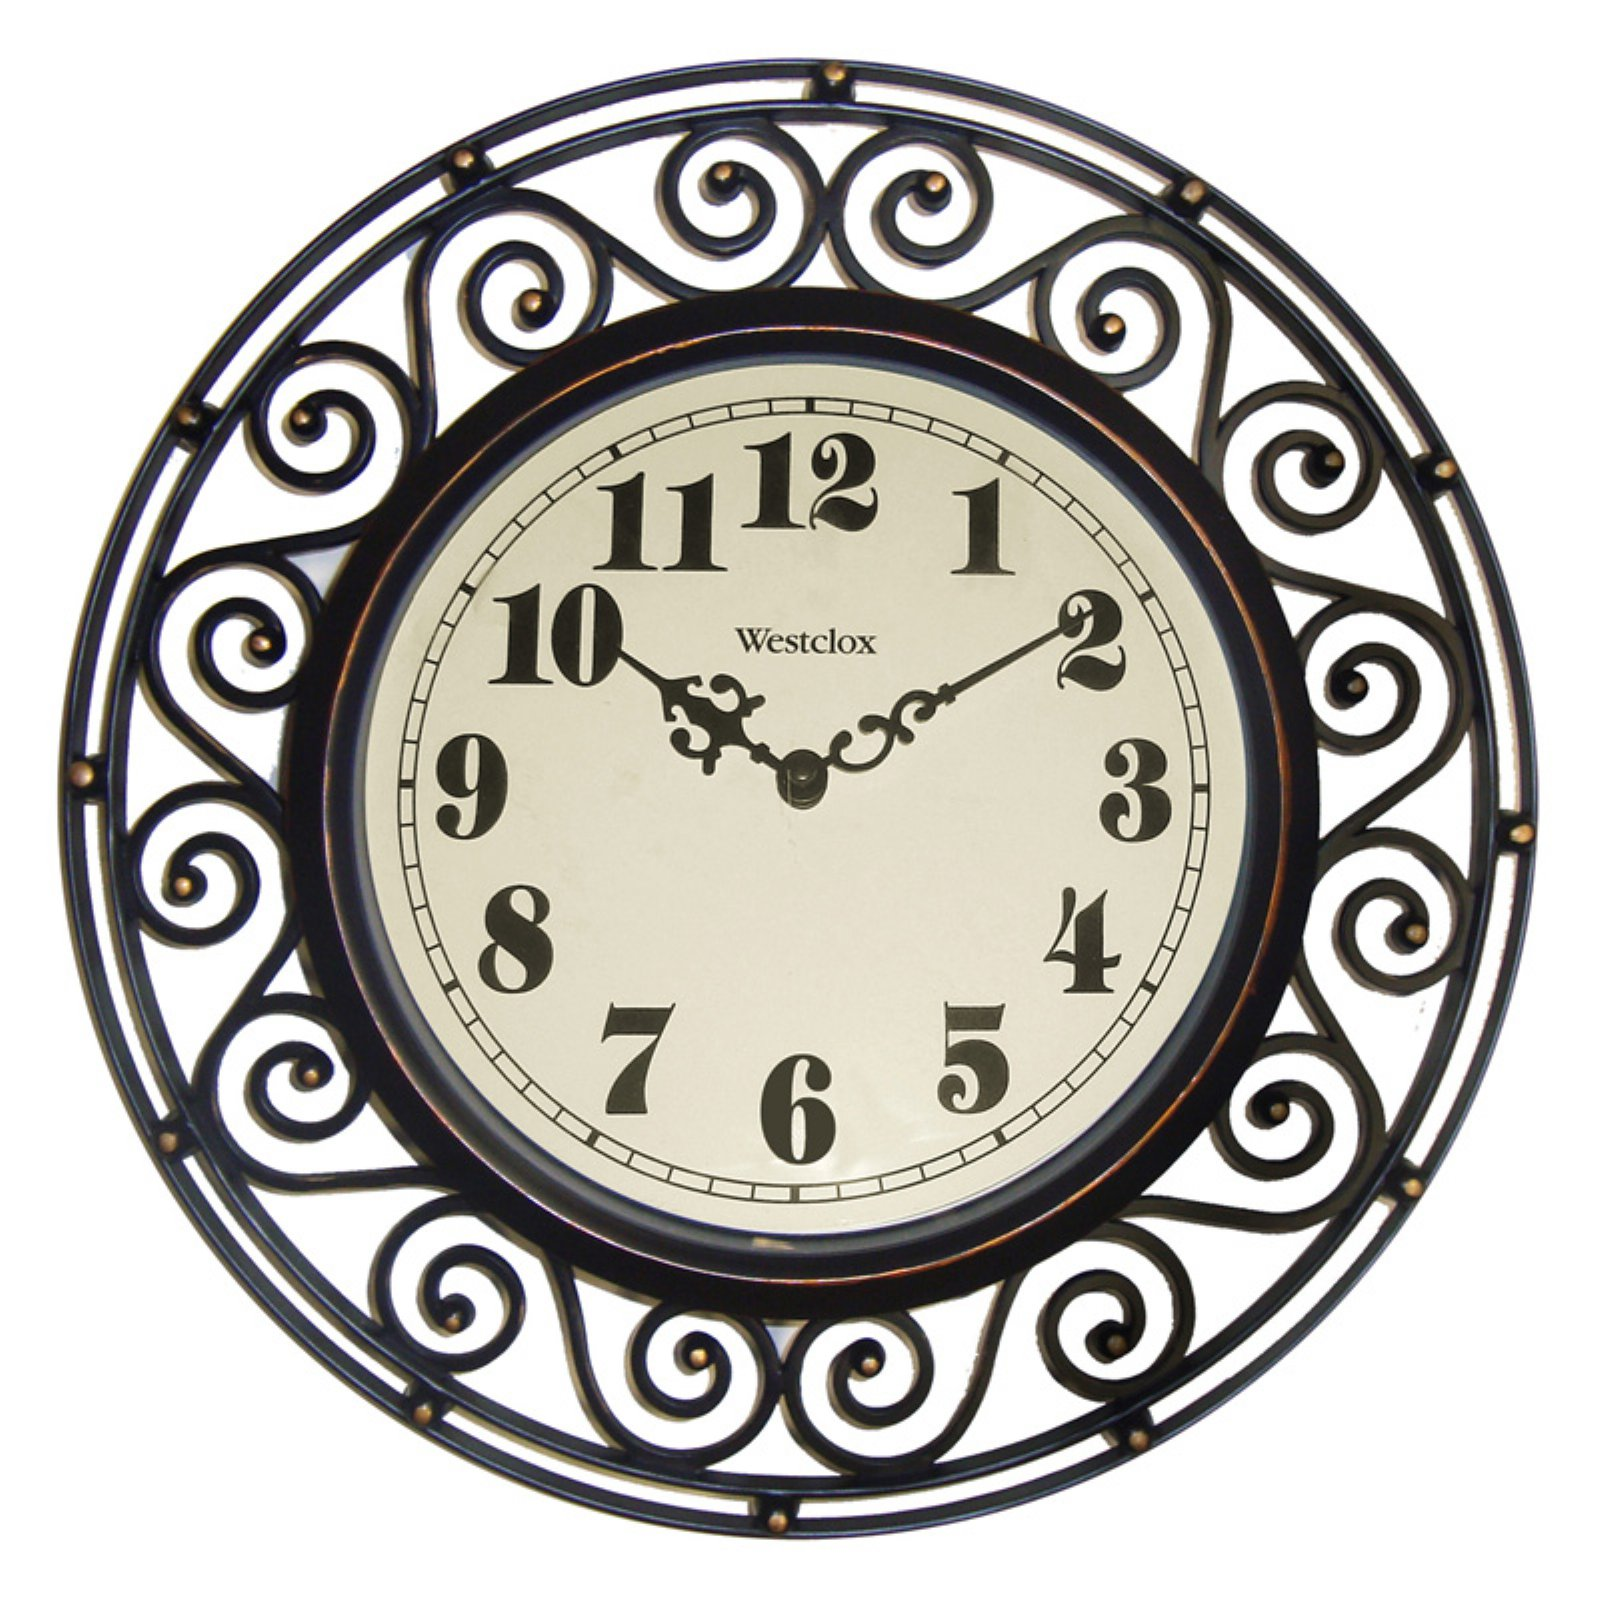 Westclox 32021 Wall Clock, Analog Display, Round, 12 in